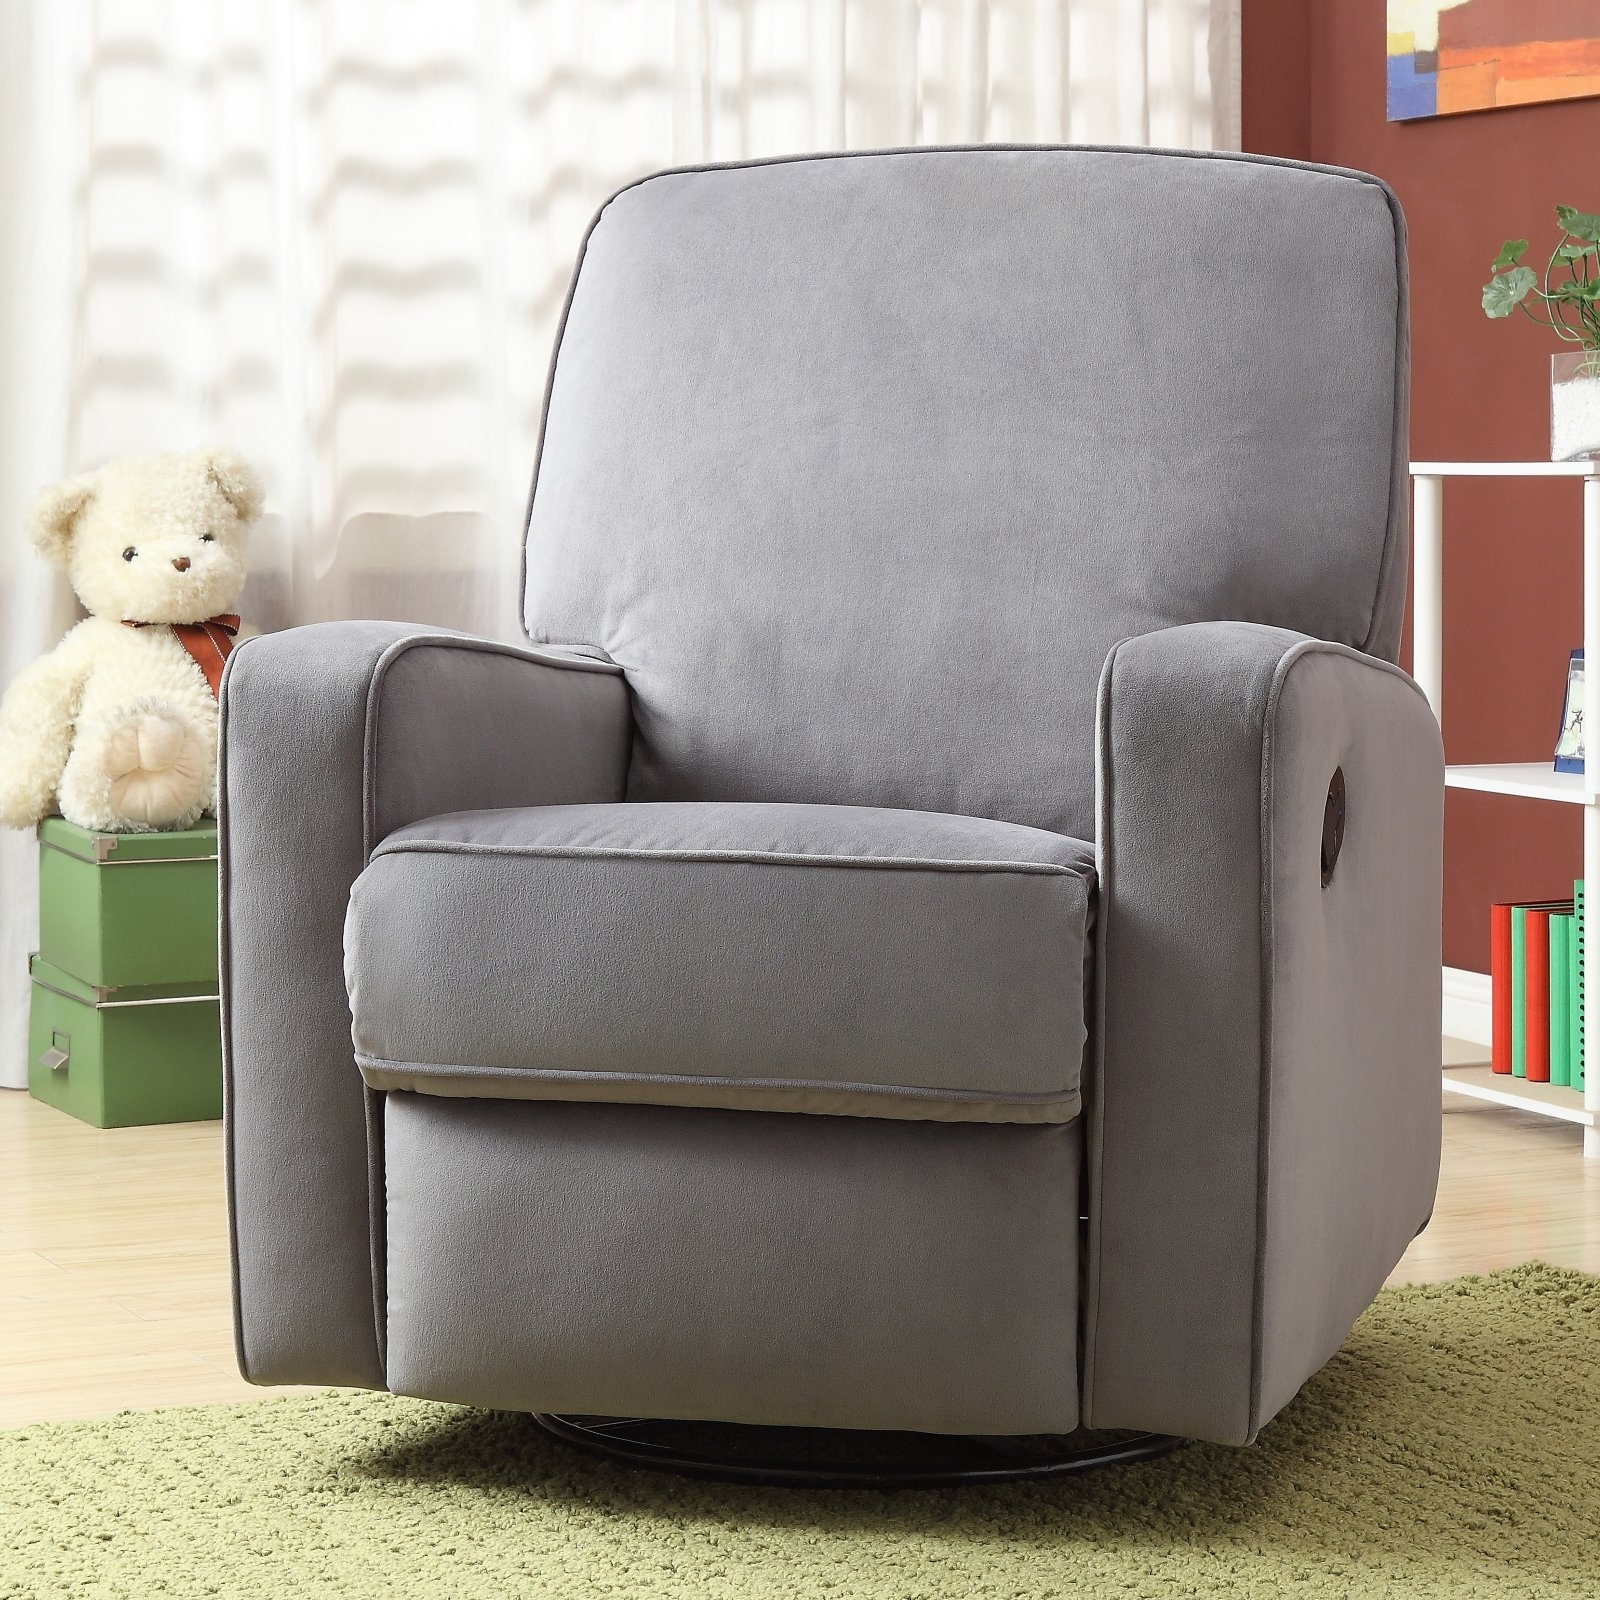 Favorite Home Meridian International Sutton Swivel Glider Recliner Stella Zen Intended For Zen Rocking Chairs (View 6 of 15)